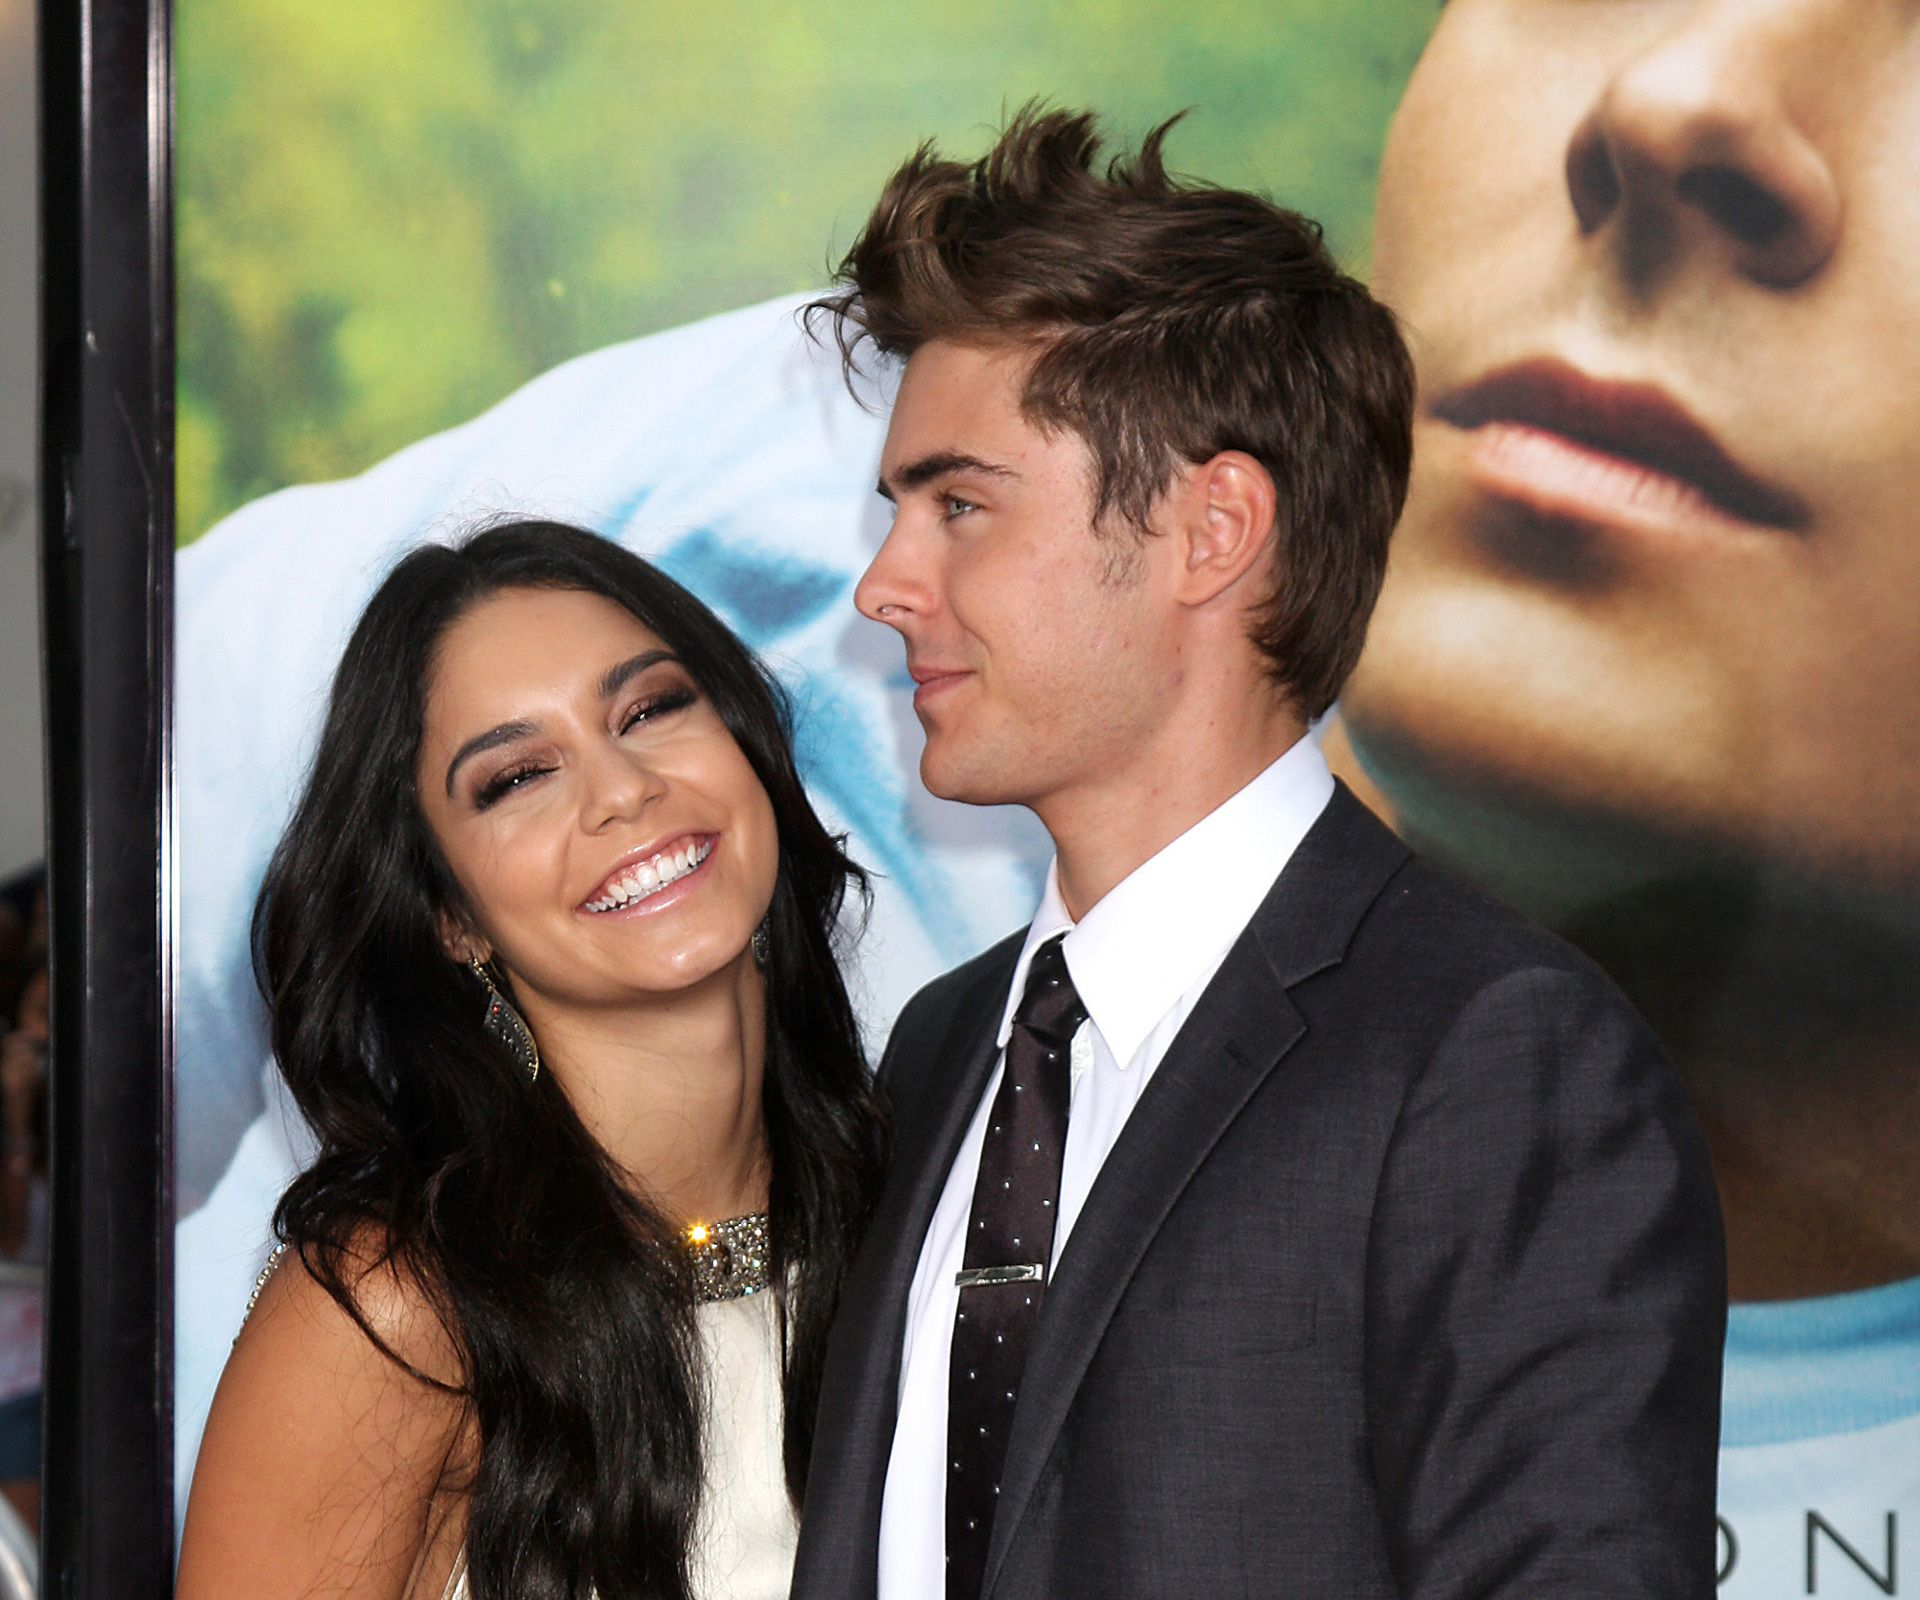 How zac efron feels about vanessa hudgens austin butler hollywood life